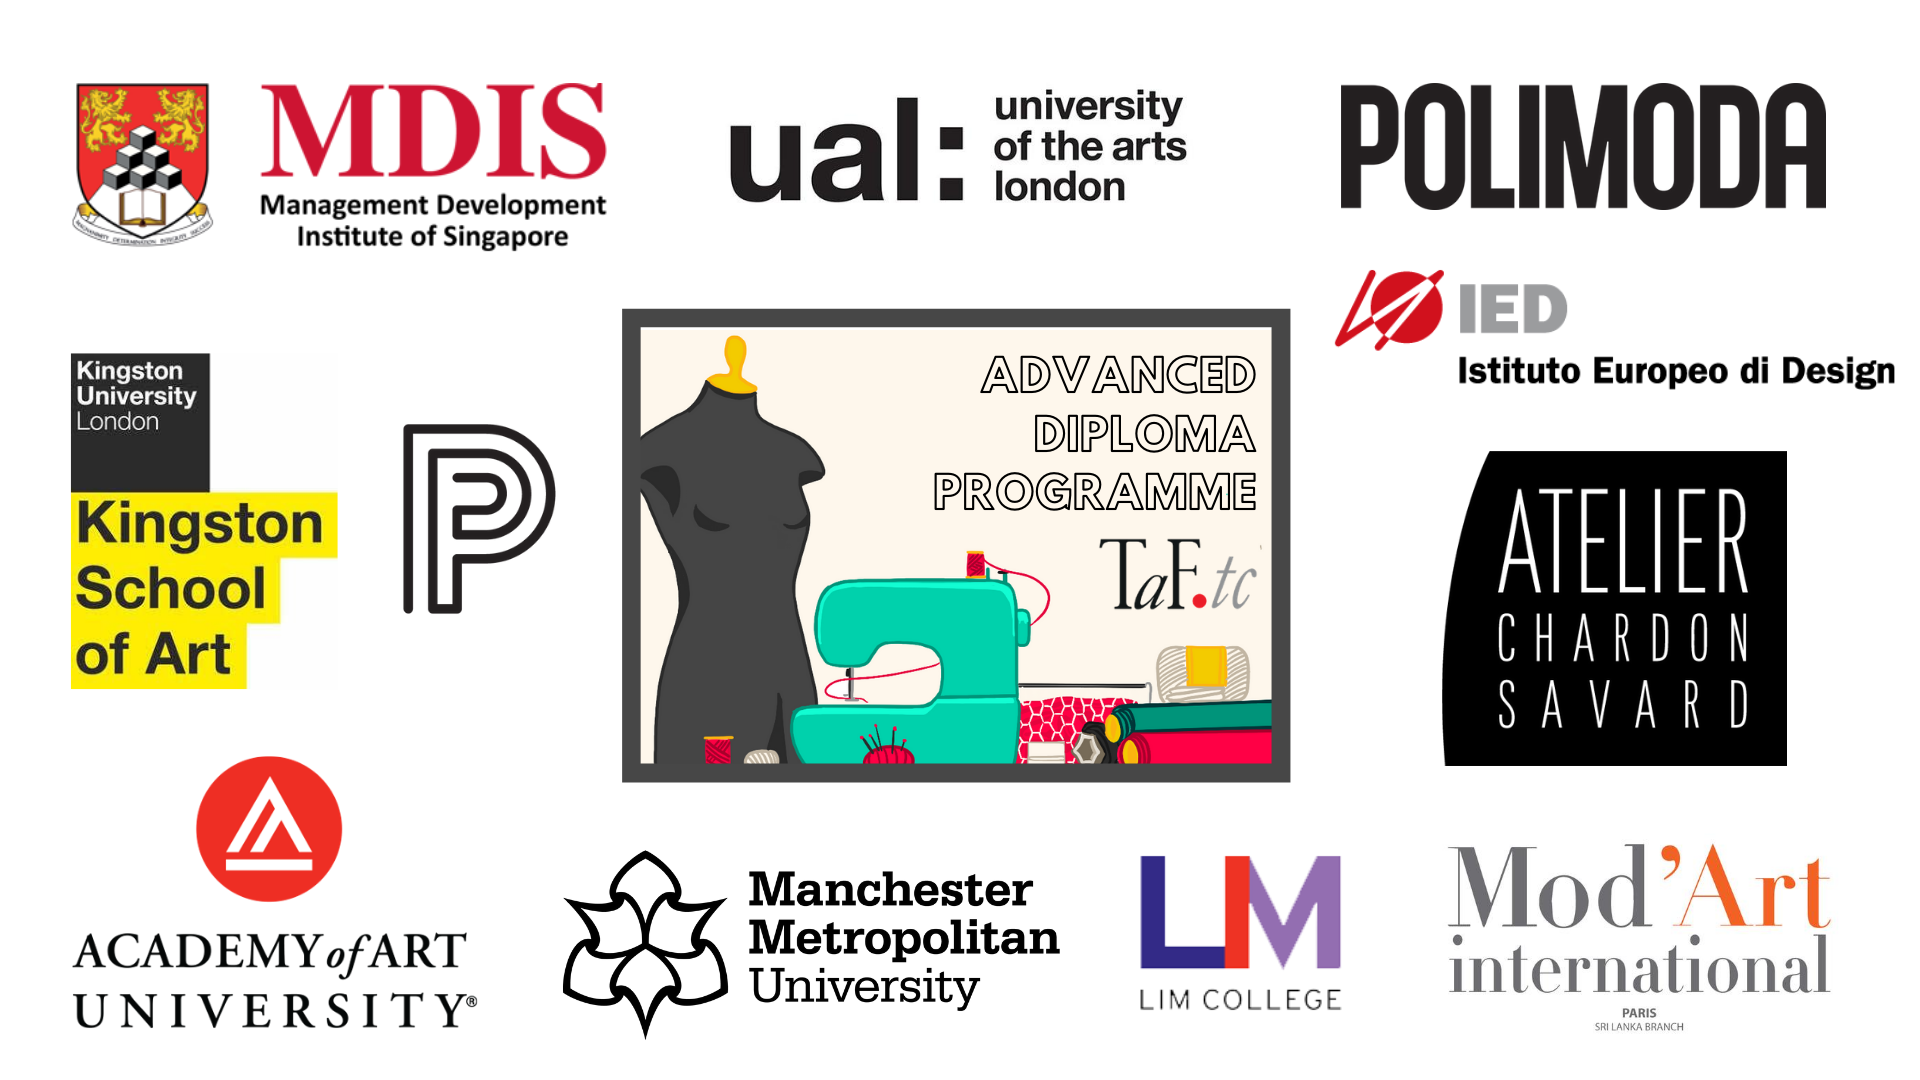 TaF.tc's accreditations with other fashion schools like MDIS, School of Fashion and Design (SFD), Paris College of Art, LIM College, Academy of Art University, Mod'Art international, Aterlier Chardon Savard, Manchester Metropolitan University, Polimoda, Kingston University, University of the Arts London (UAL), and Istituto Europeo di Design (IED)